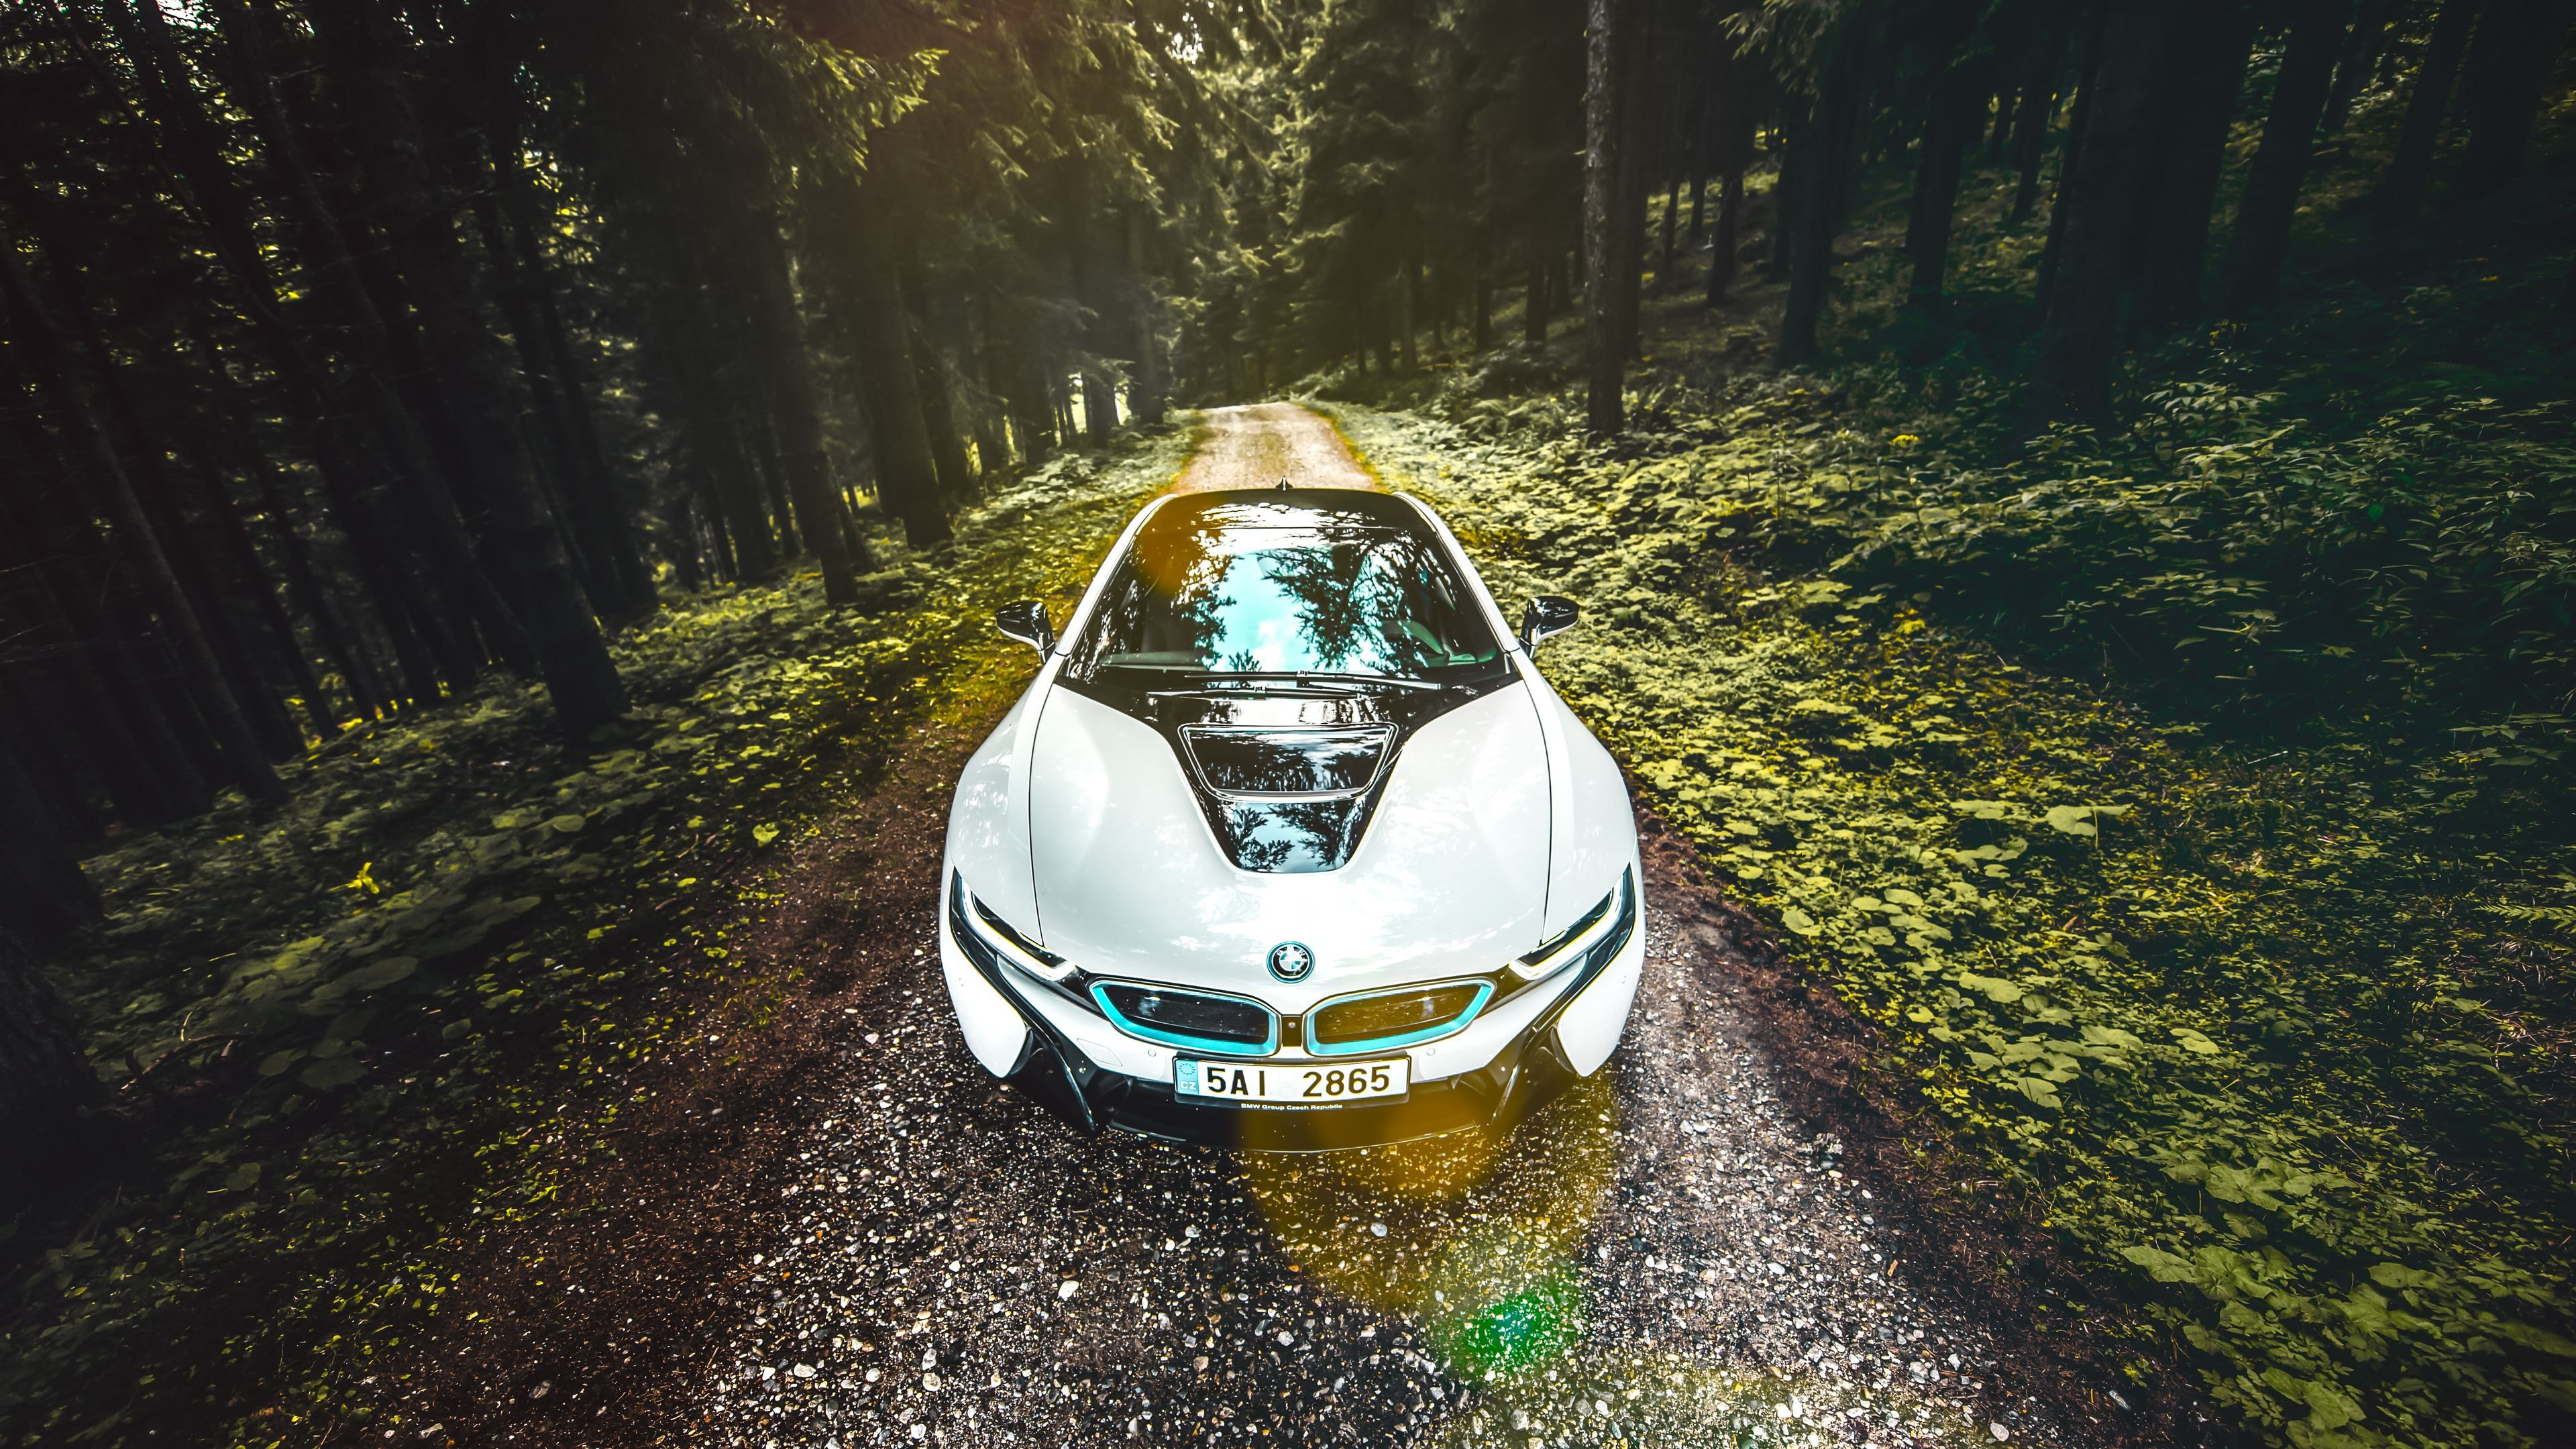 Bmw I8 2020 Hd 4k Wallpapers Cars Wallpapers Bmw Wallpapers Bmw I8 Wallpapers 5k Wallpapers 4k Wallpapers Bmw Wallpapers Car Wallpapers Bmw I8